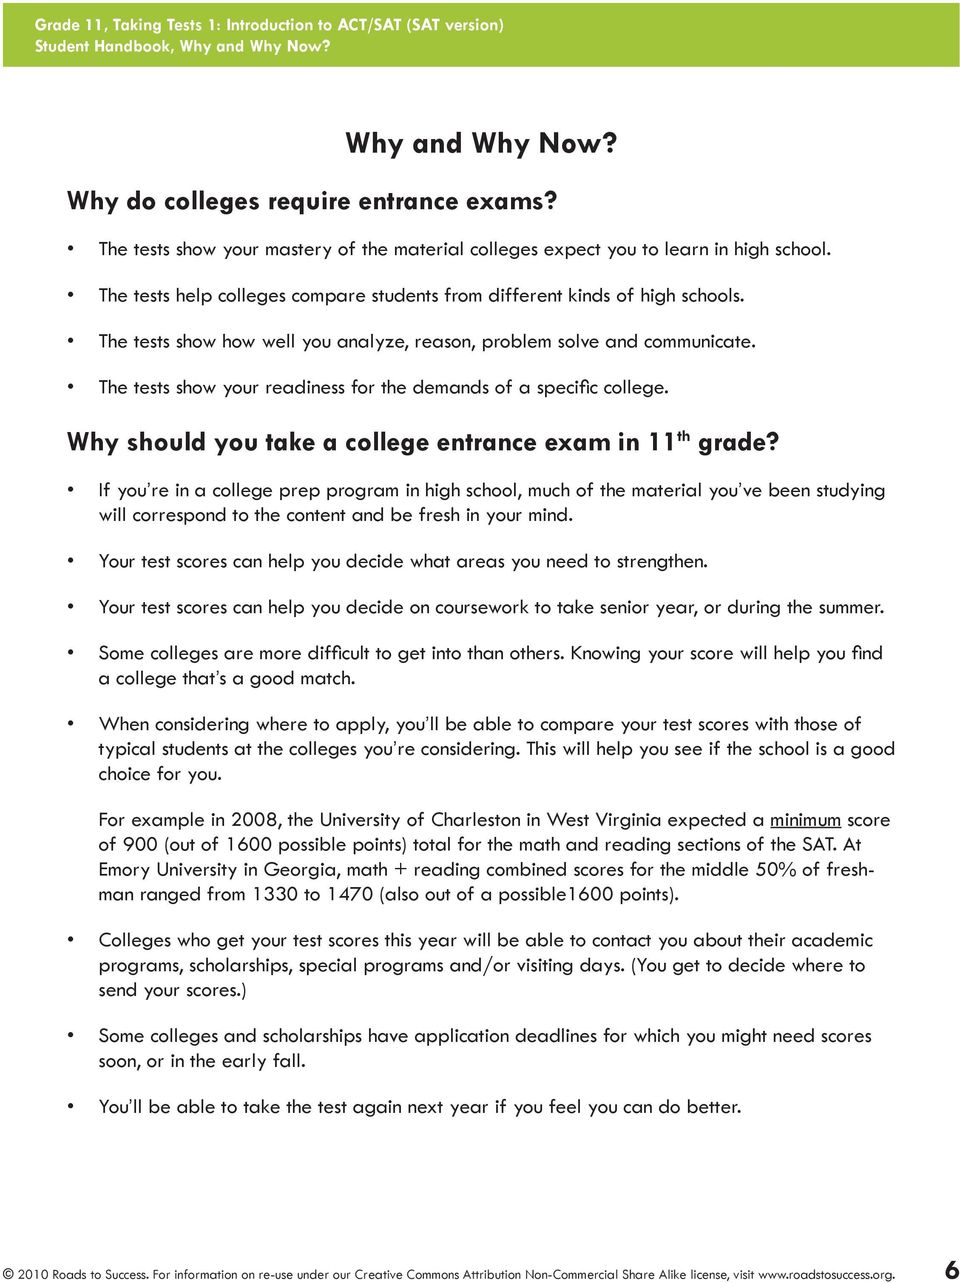 The tests show your readiness for the demands of a specific college. Why should you take a college entrance exam in 11 th grade?